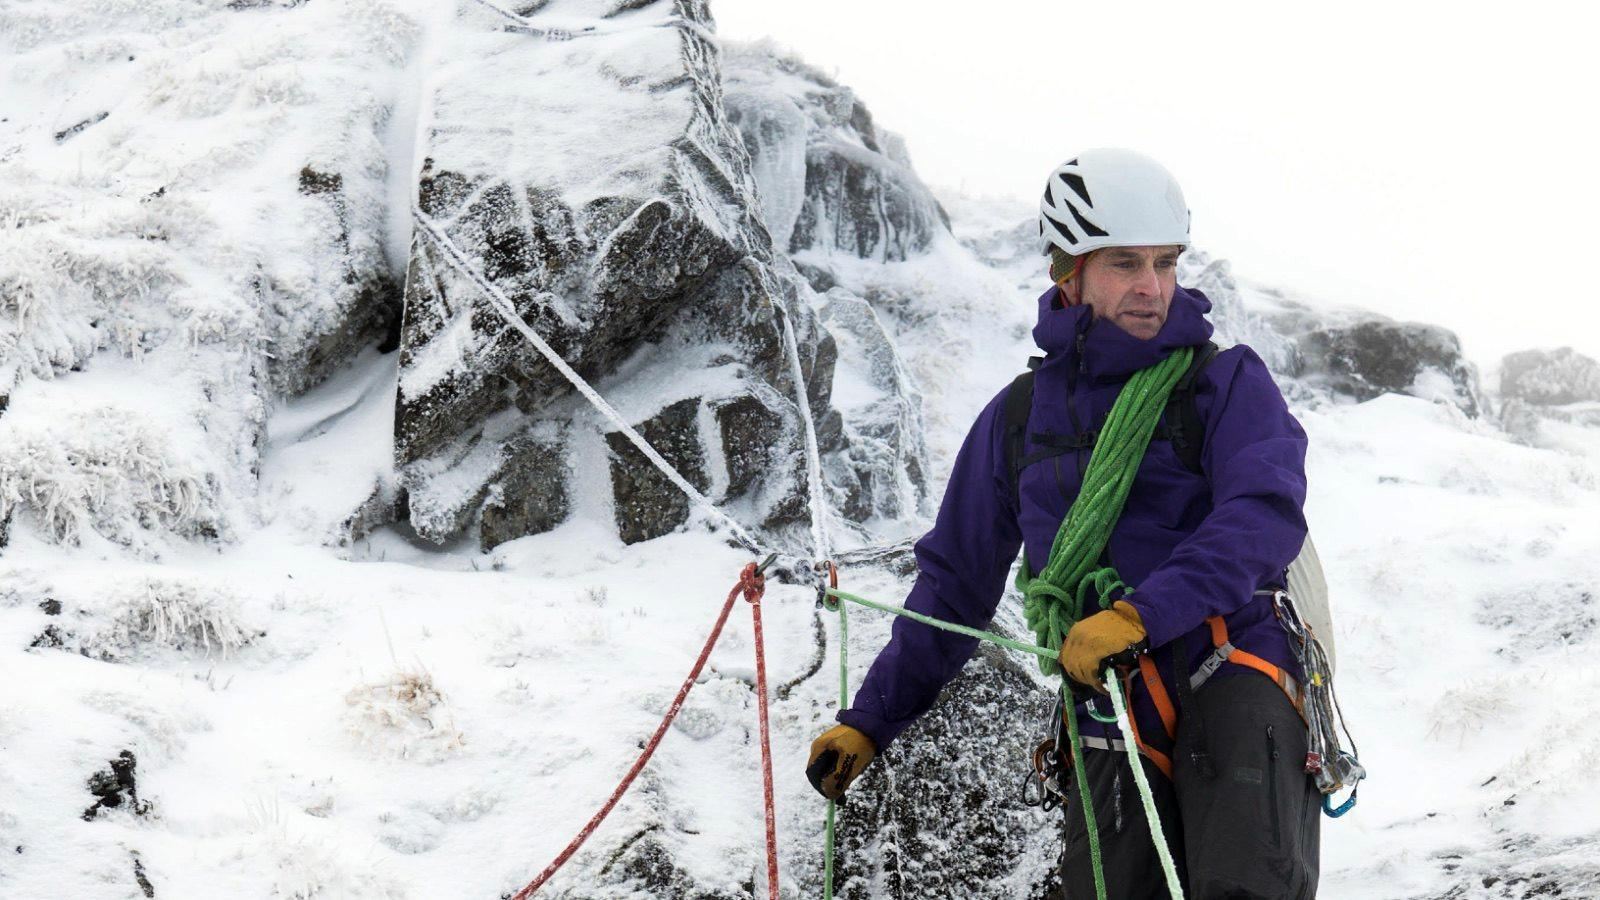 Andy Spink, Association of Mountaineering Instructors, Associate Instructor with Ocean Vertical in Glen Coe